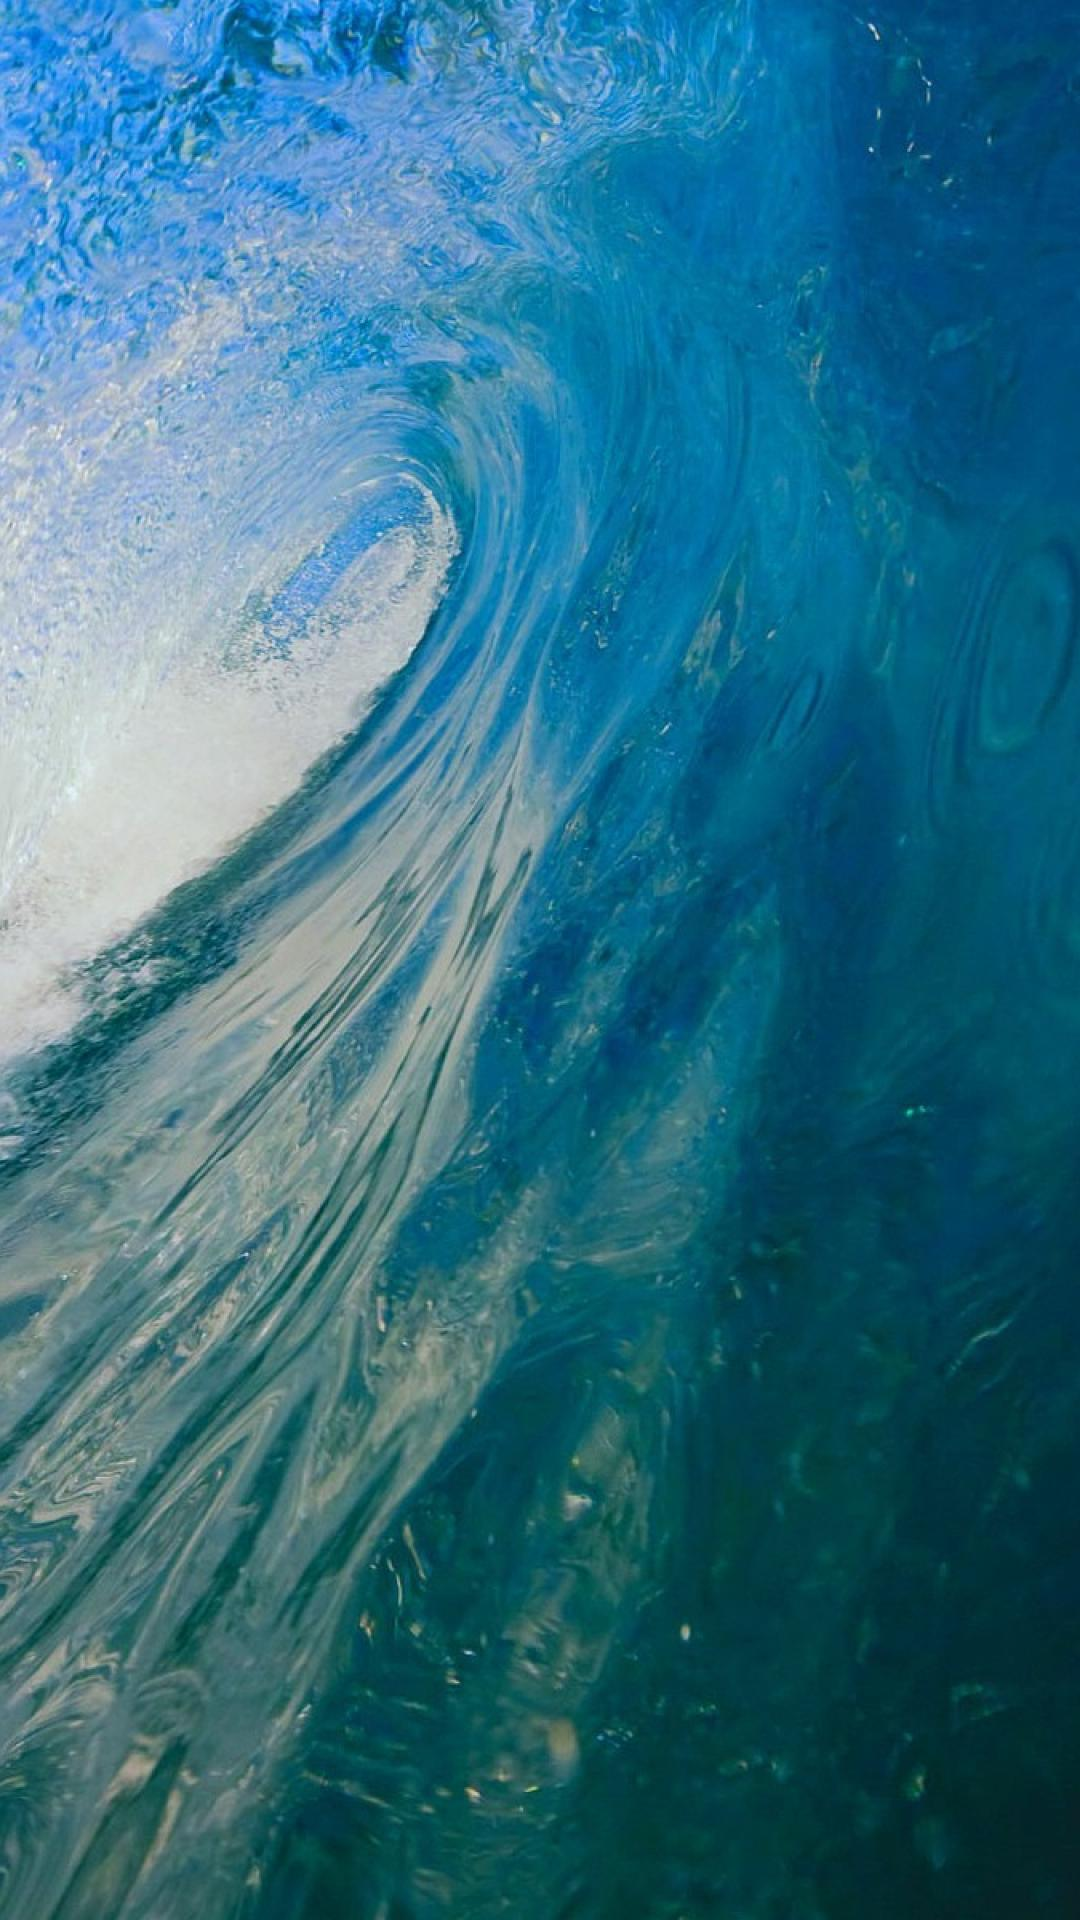 Waves clark little wallpaper 41592 1080x1920